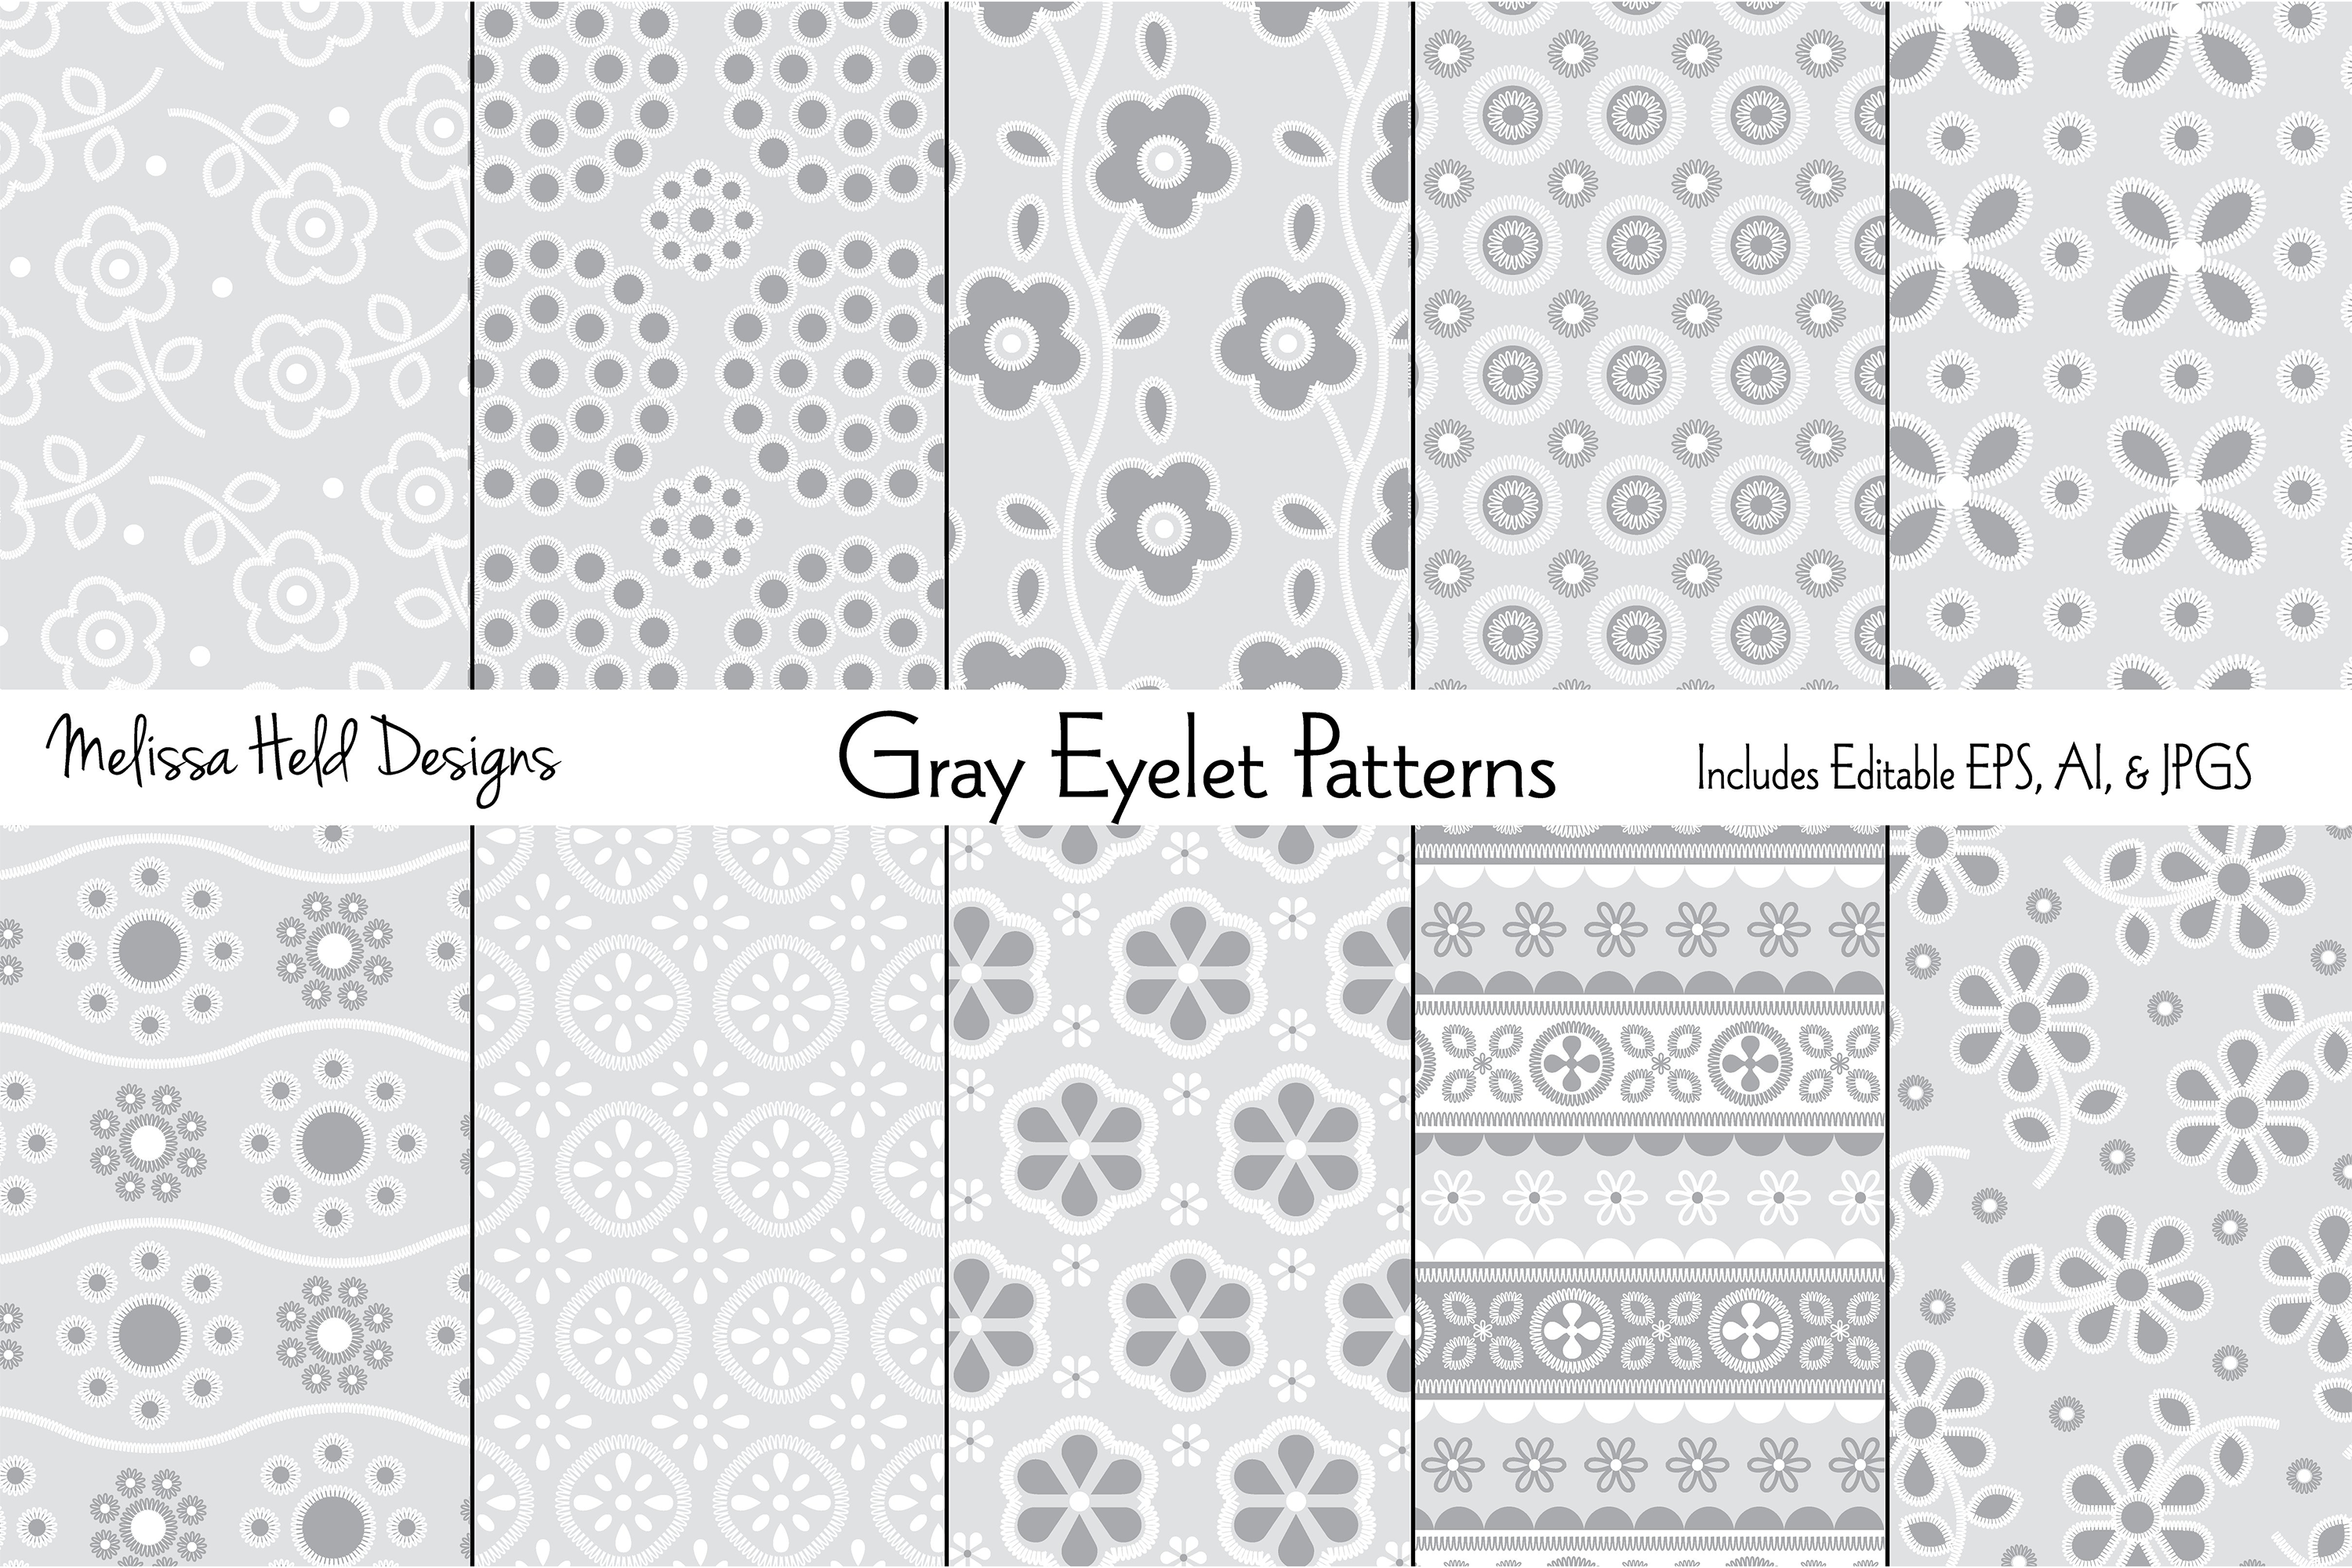 Gray Eyelet Embroidery Patterns example image 1